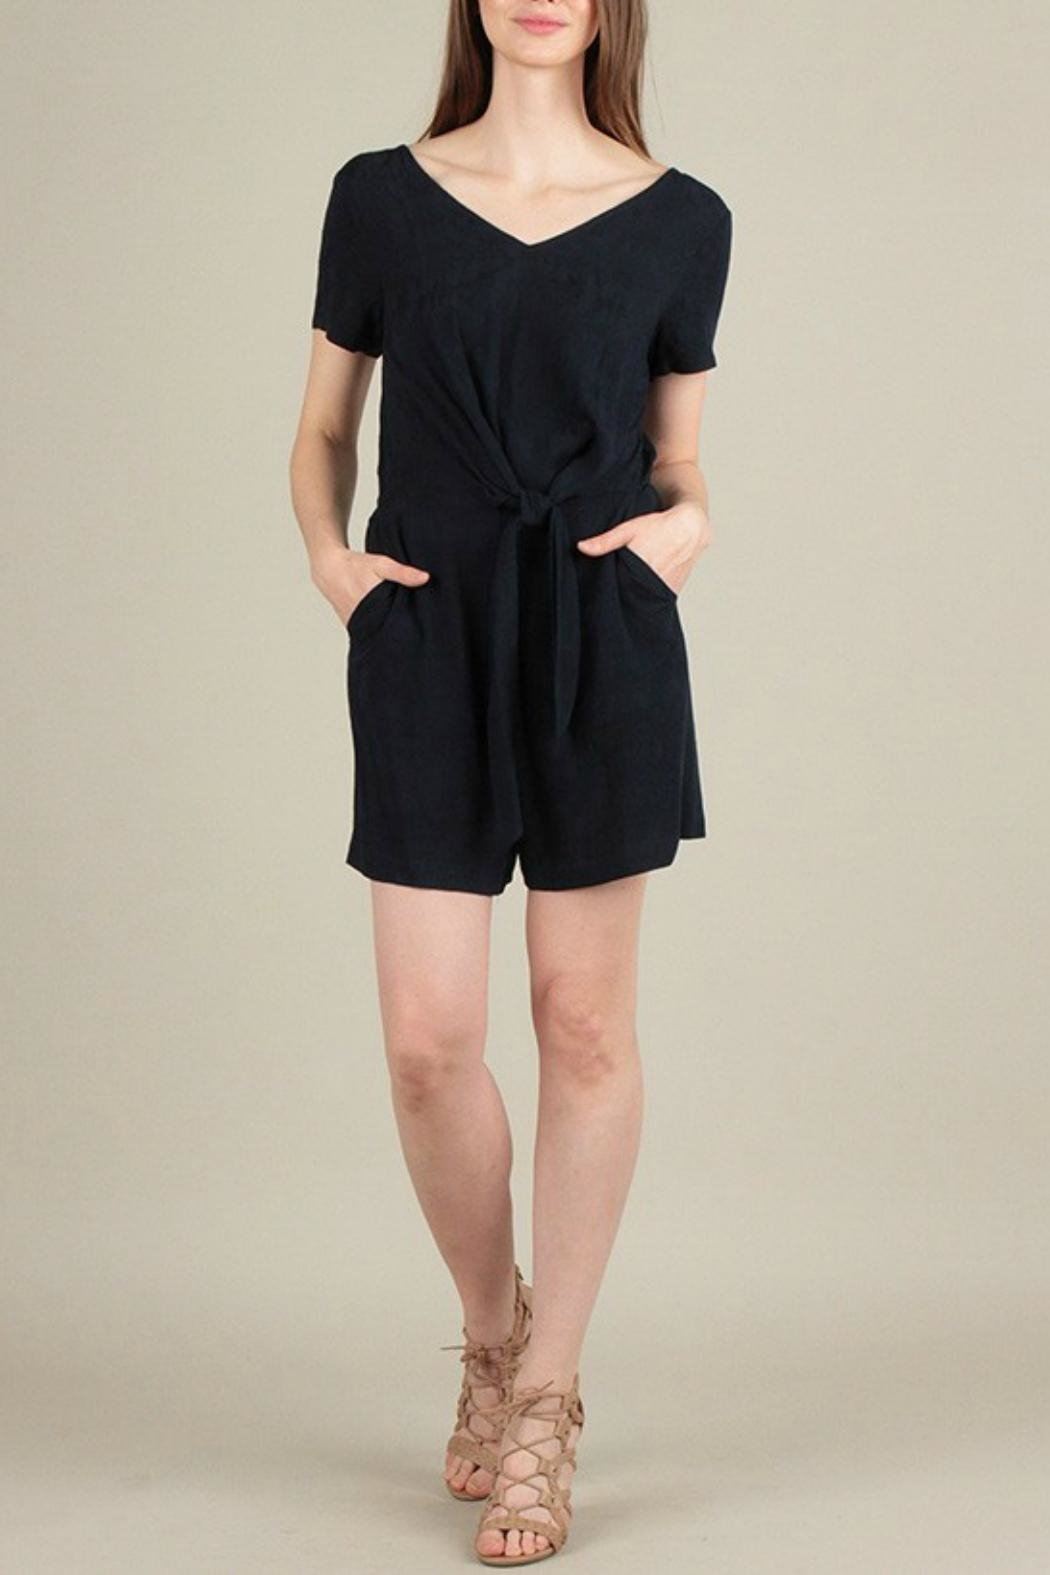 Skies Are Blue Short Sleeve Romper - Front Cropped Image